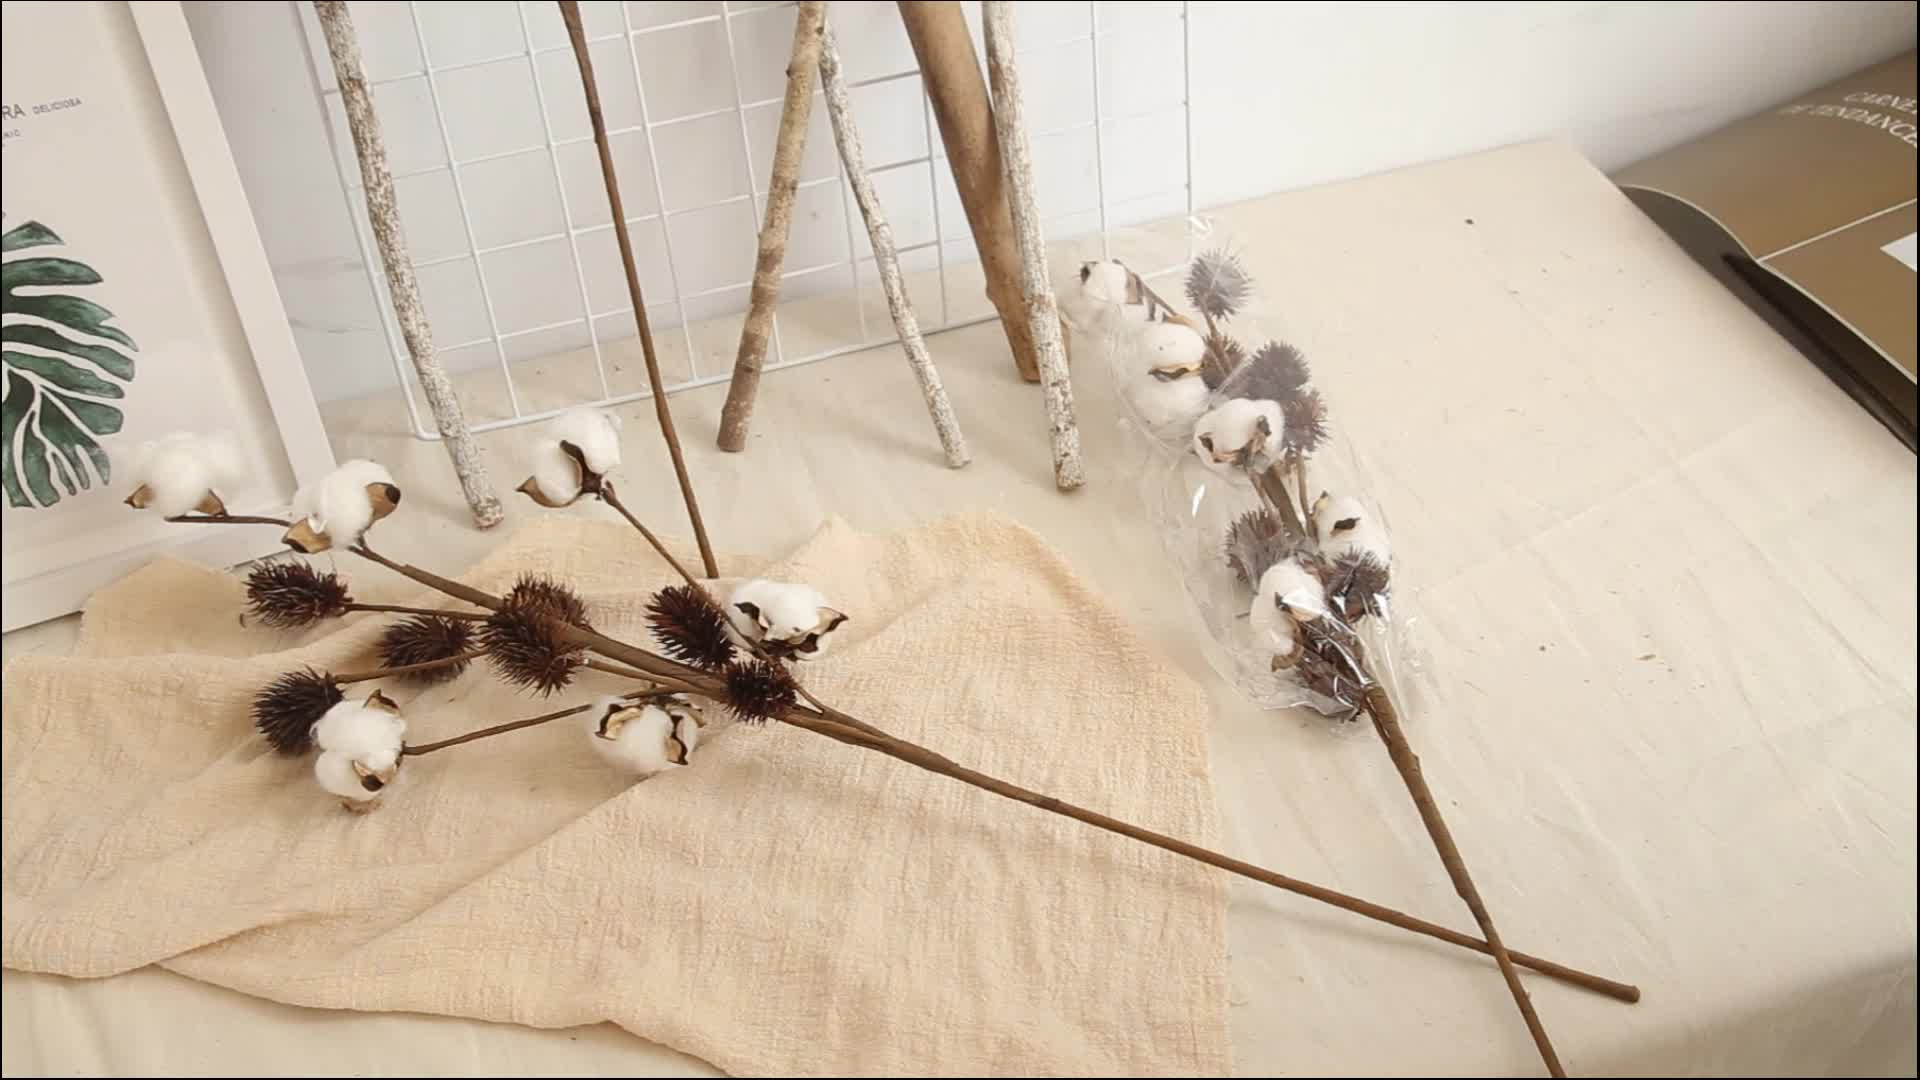 Natural Five Heads Cotton Branches/Stems For Home Supermarket Hotel Decoration